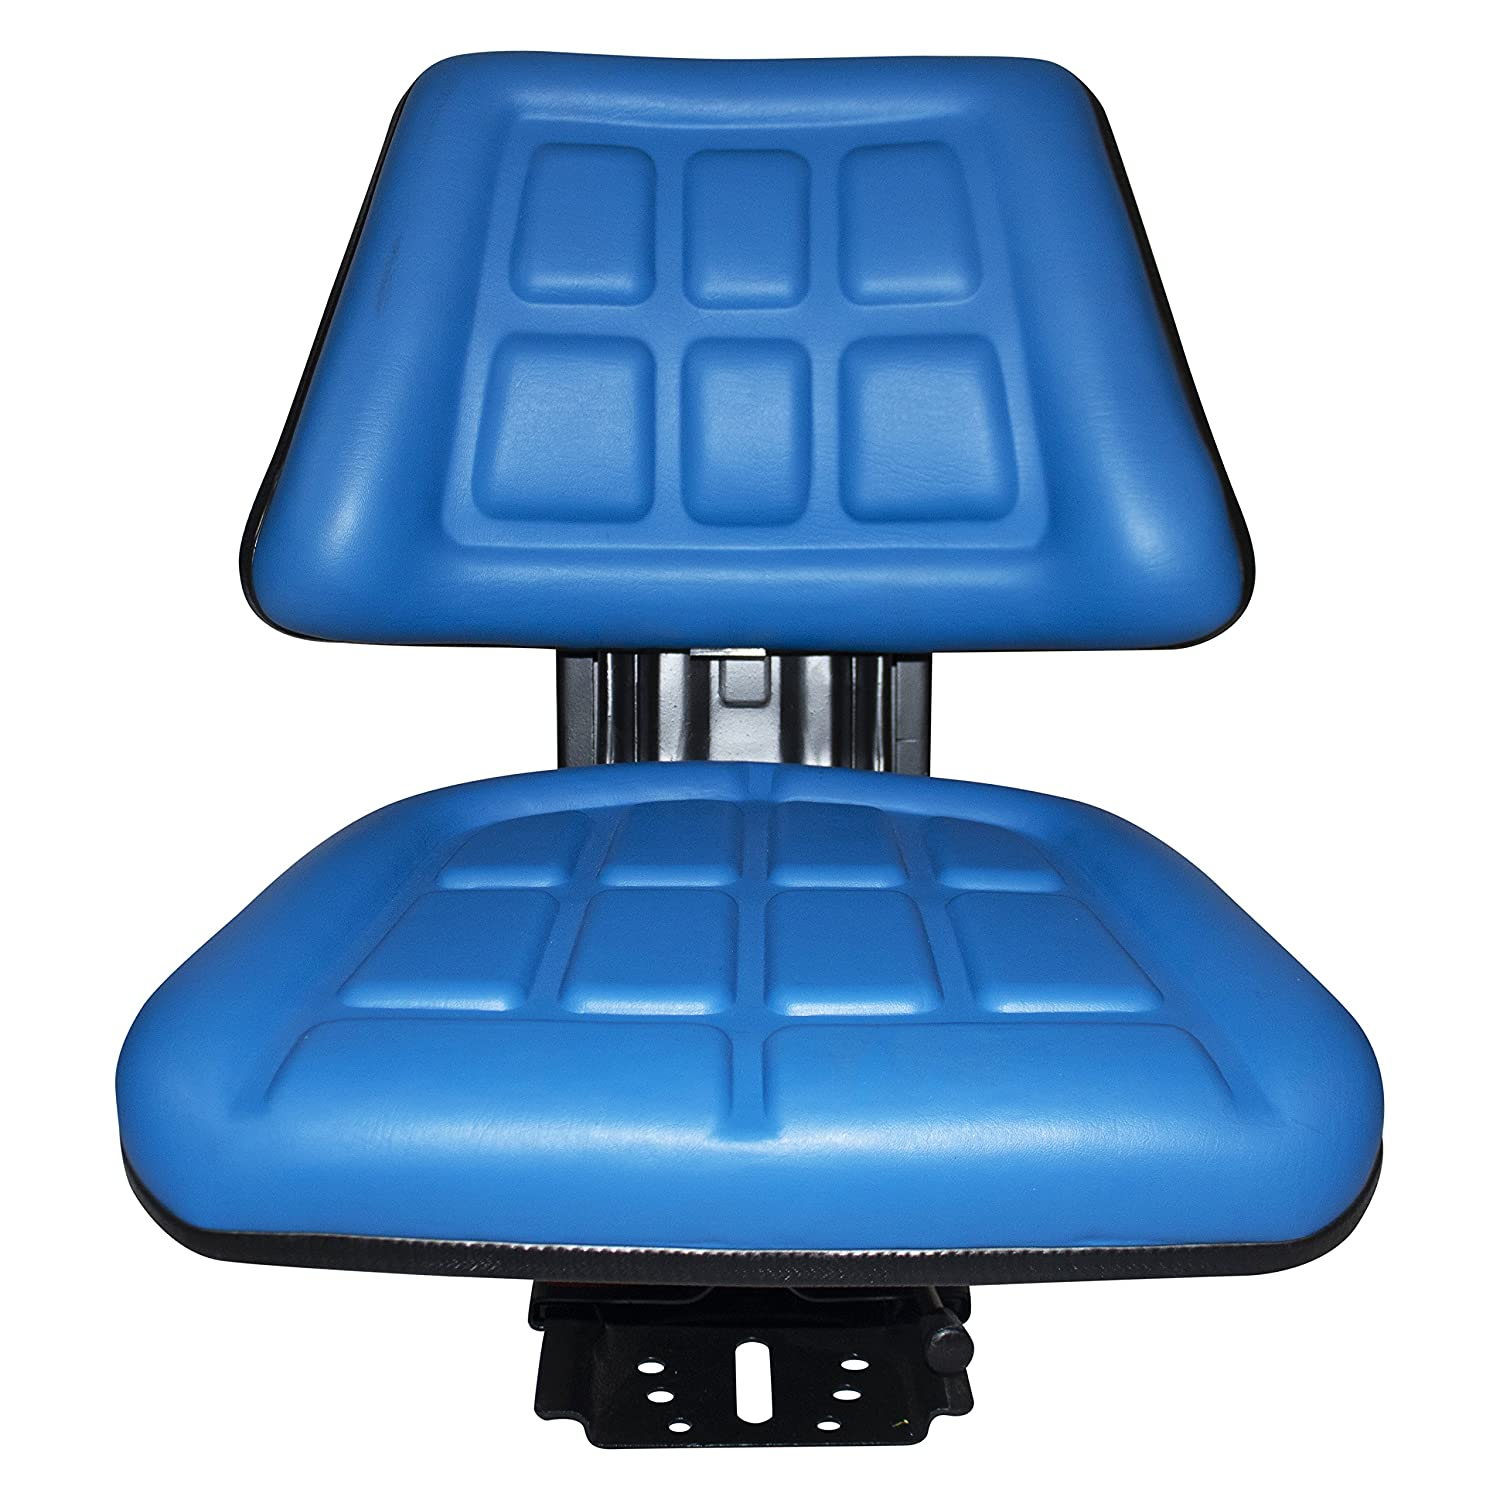 Blue Ford/New Holland 2000 2310 2600 2610 2810 2910 TRAC SEATS Brand TRIBACK Style Universal Tractor Suspension SEAT with TILT (Same Day Shipping - GET IT Fast!! View Our Transit MAP) Stateline Distribution Inc. BLUEFORD2000-WAF